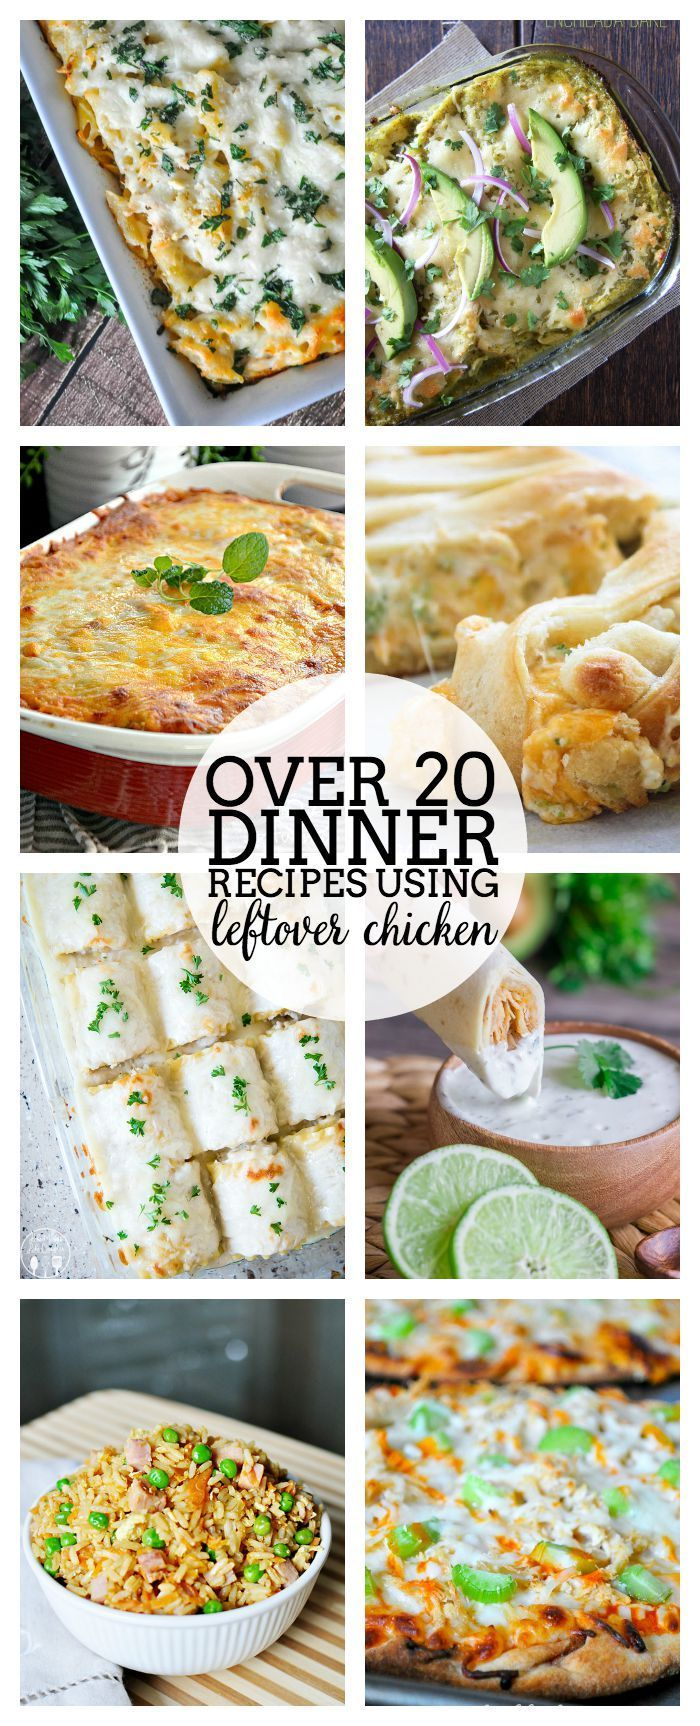 Make good use of your grocery budget and your time with these Leftover Chicken Recipes that are perfect for weeknight dinners! | The Love Nerds